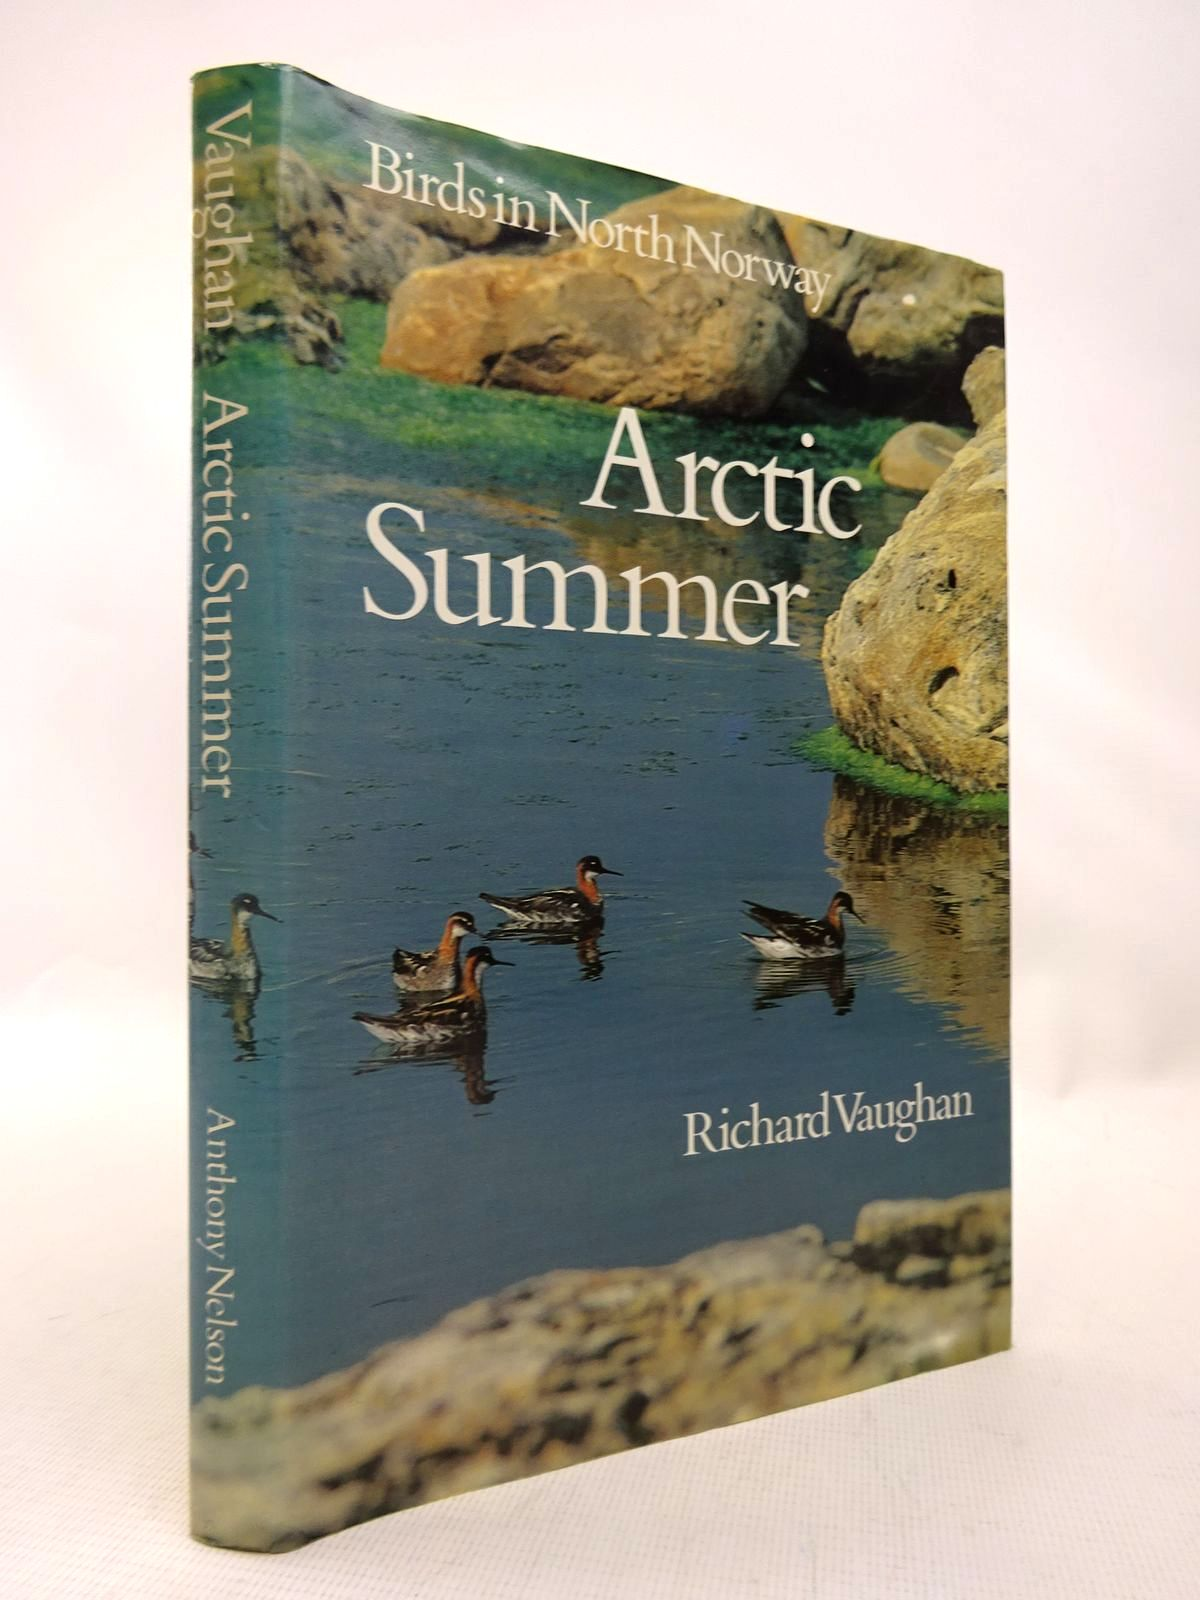 Photo of ARCTIC SUMMER written by Vaughan, Richard published by Anthony Nelson Ltd. (STOCK CODE: 1816583)  for sale by Stella & Rose's Books